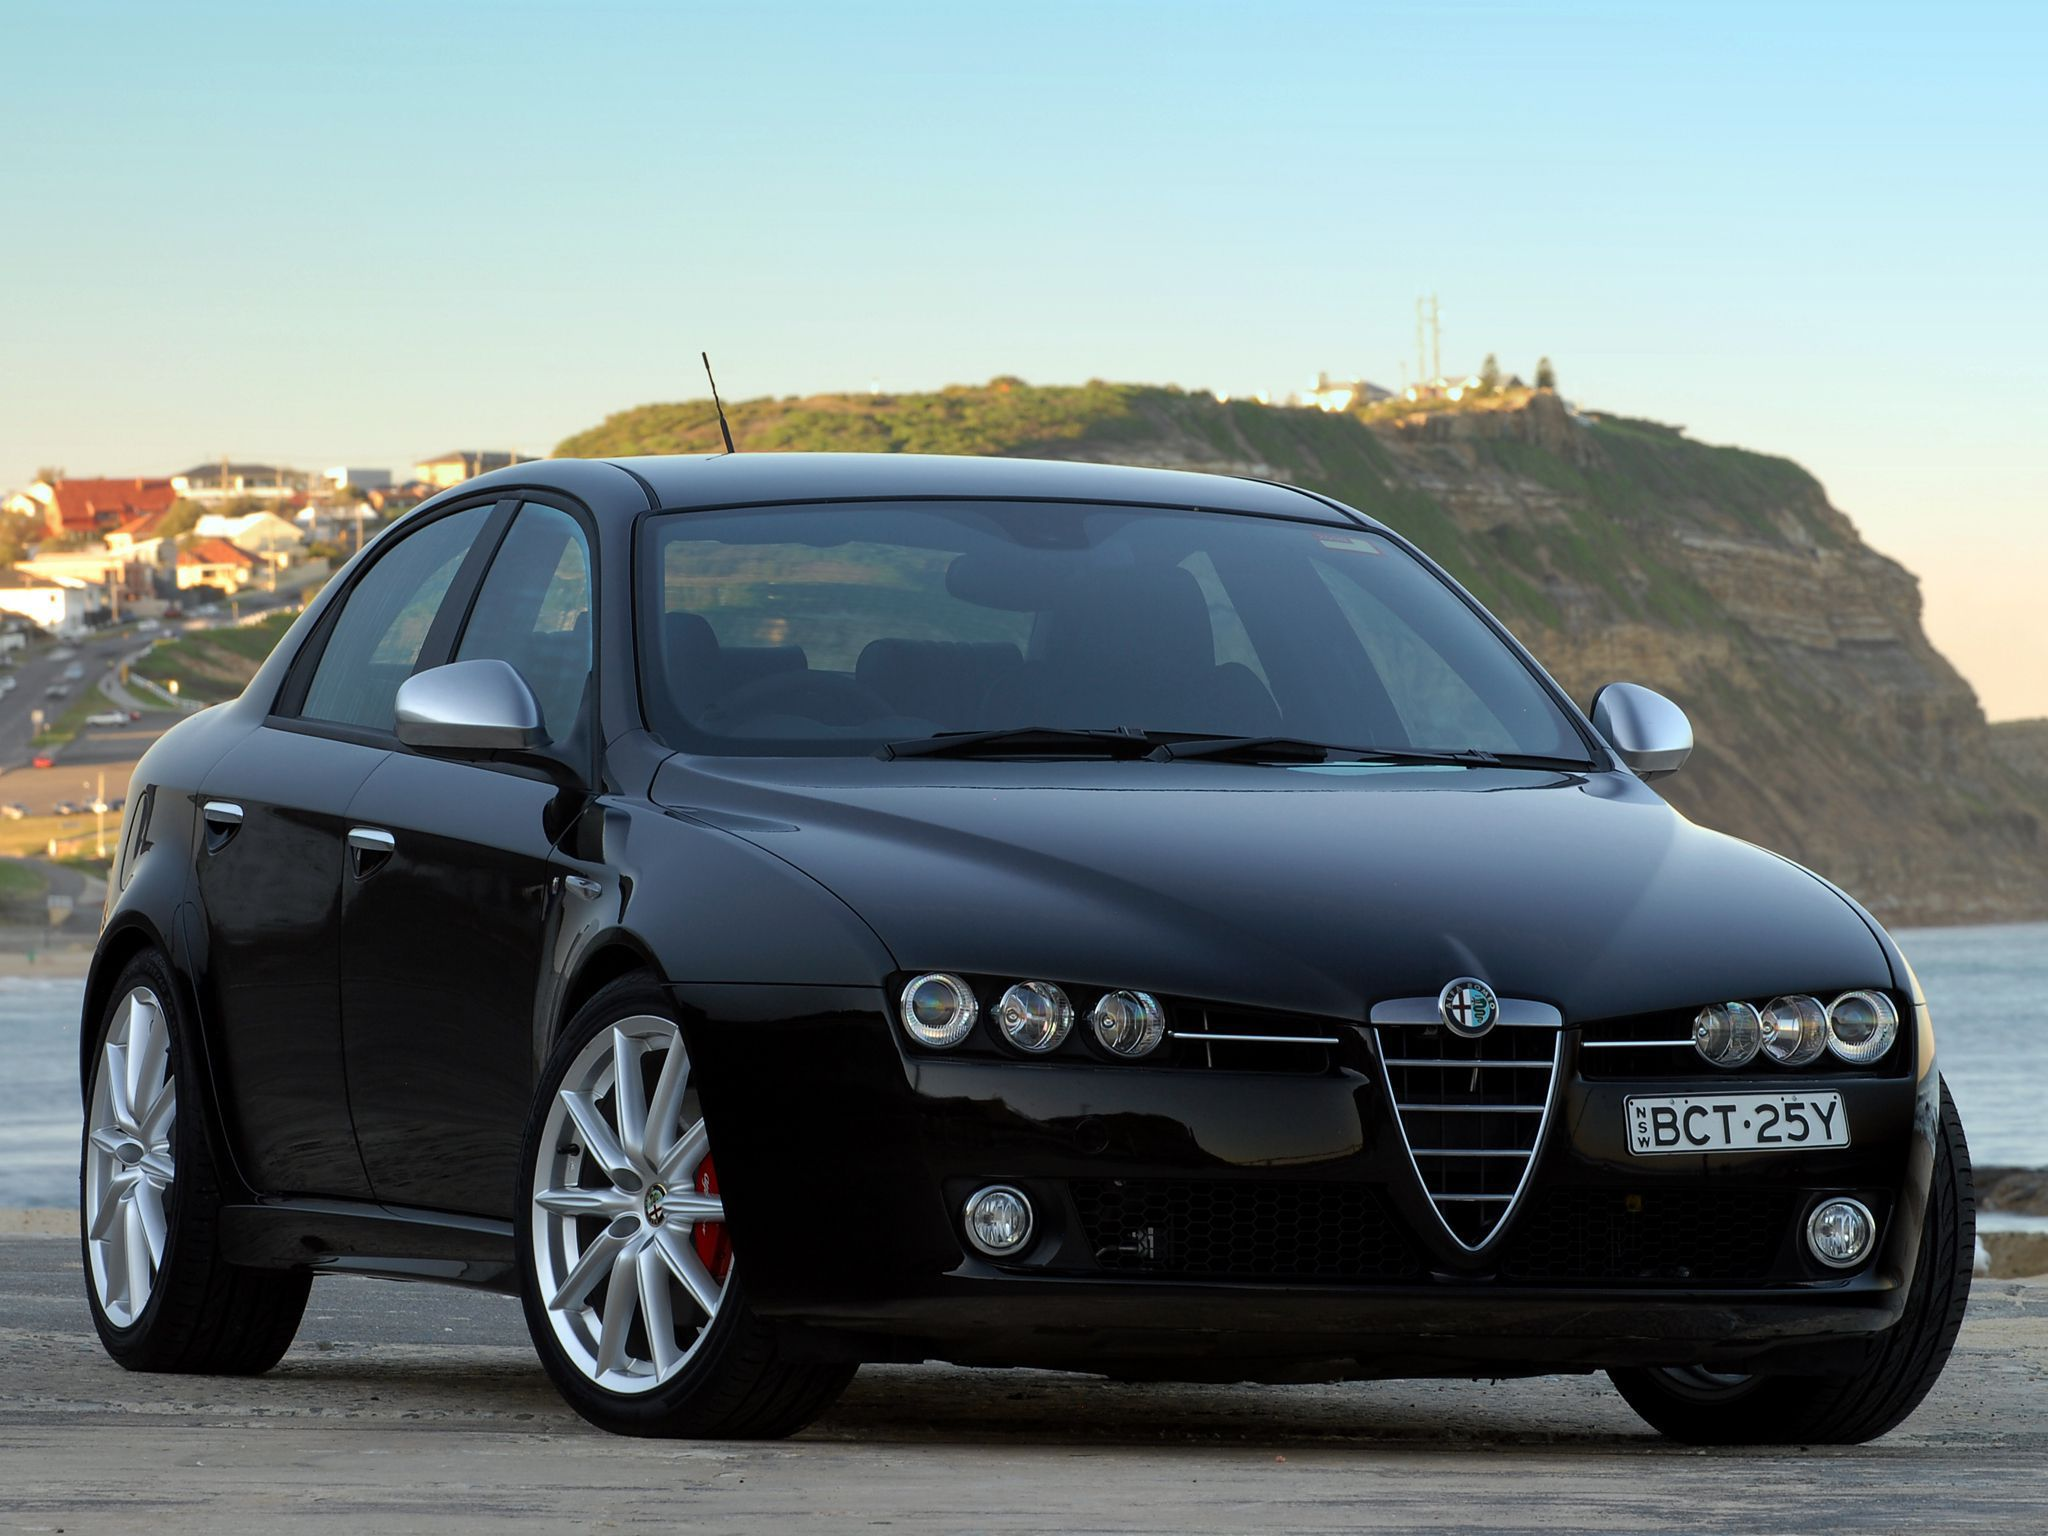 Alfa Romeo 159 High Quality Wallpapers